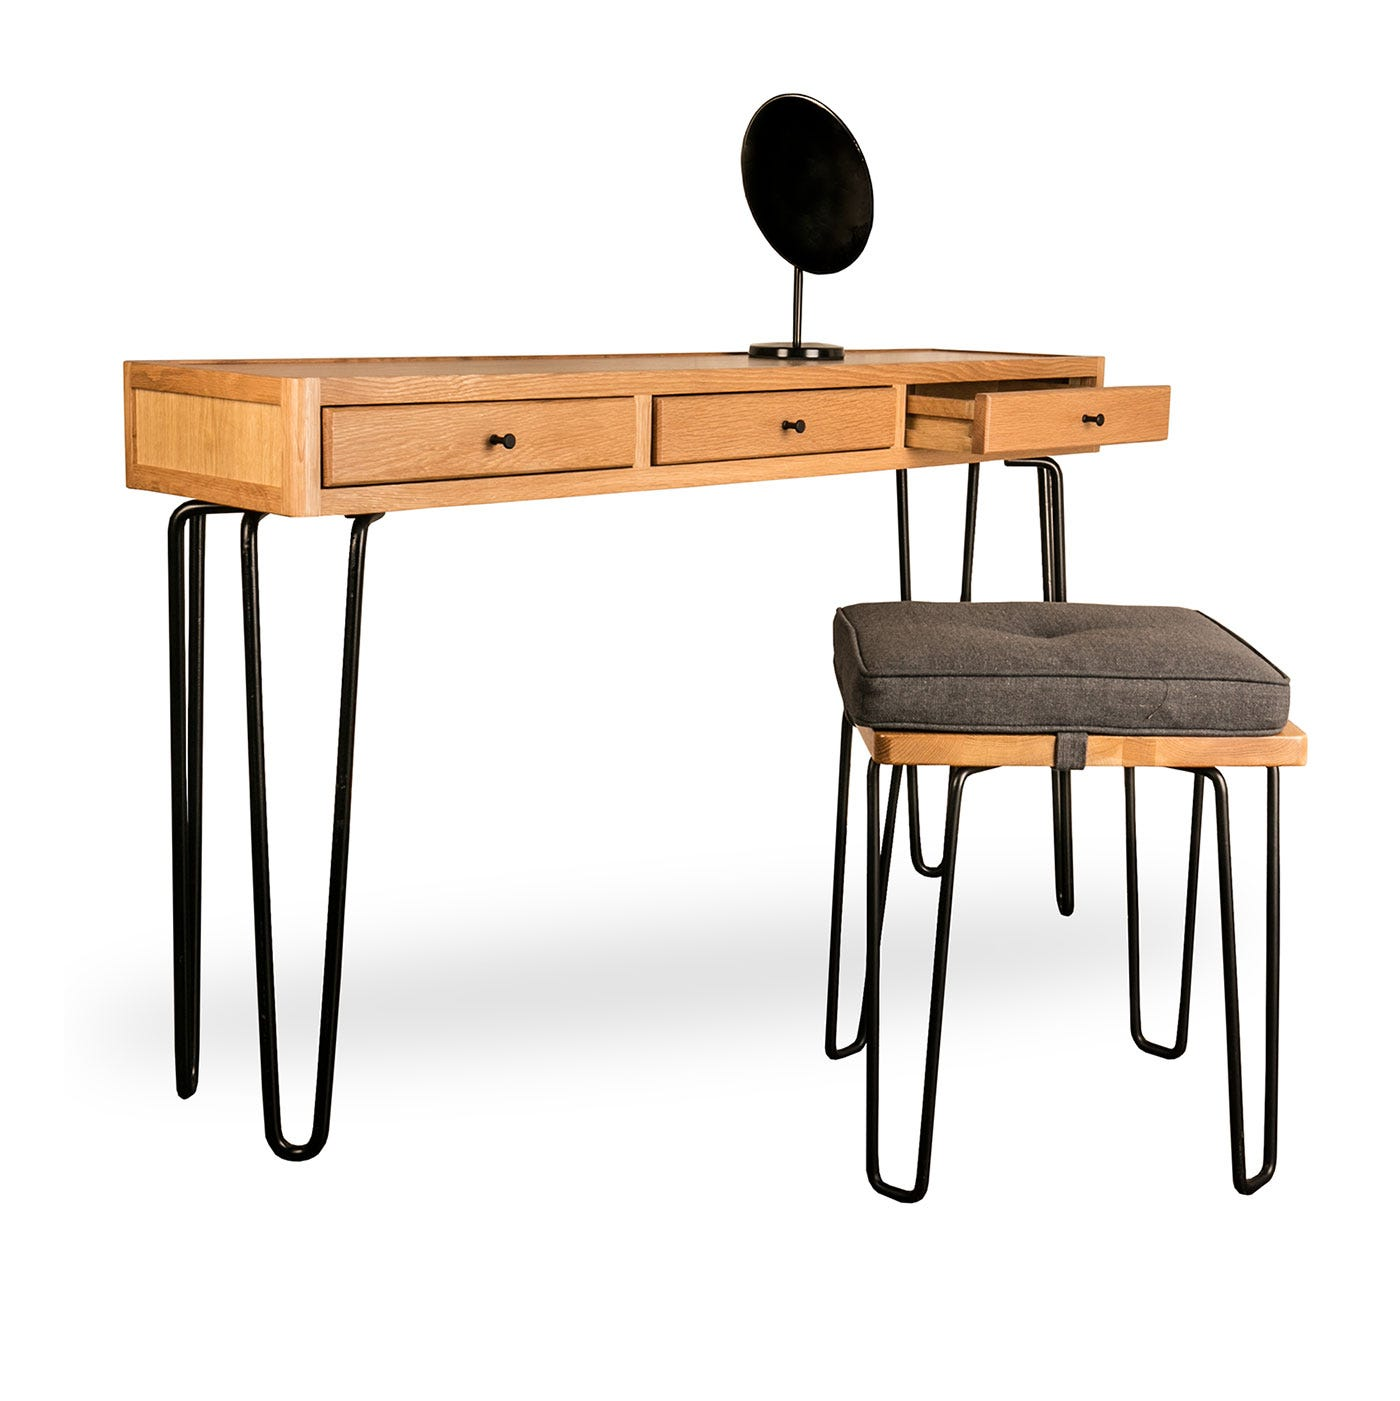 Brunel Stool with Brunel Stool Cushion Smoke Grey Fabric and Brunel Console Table